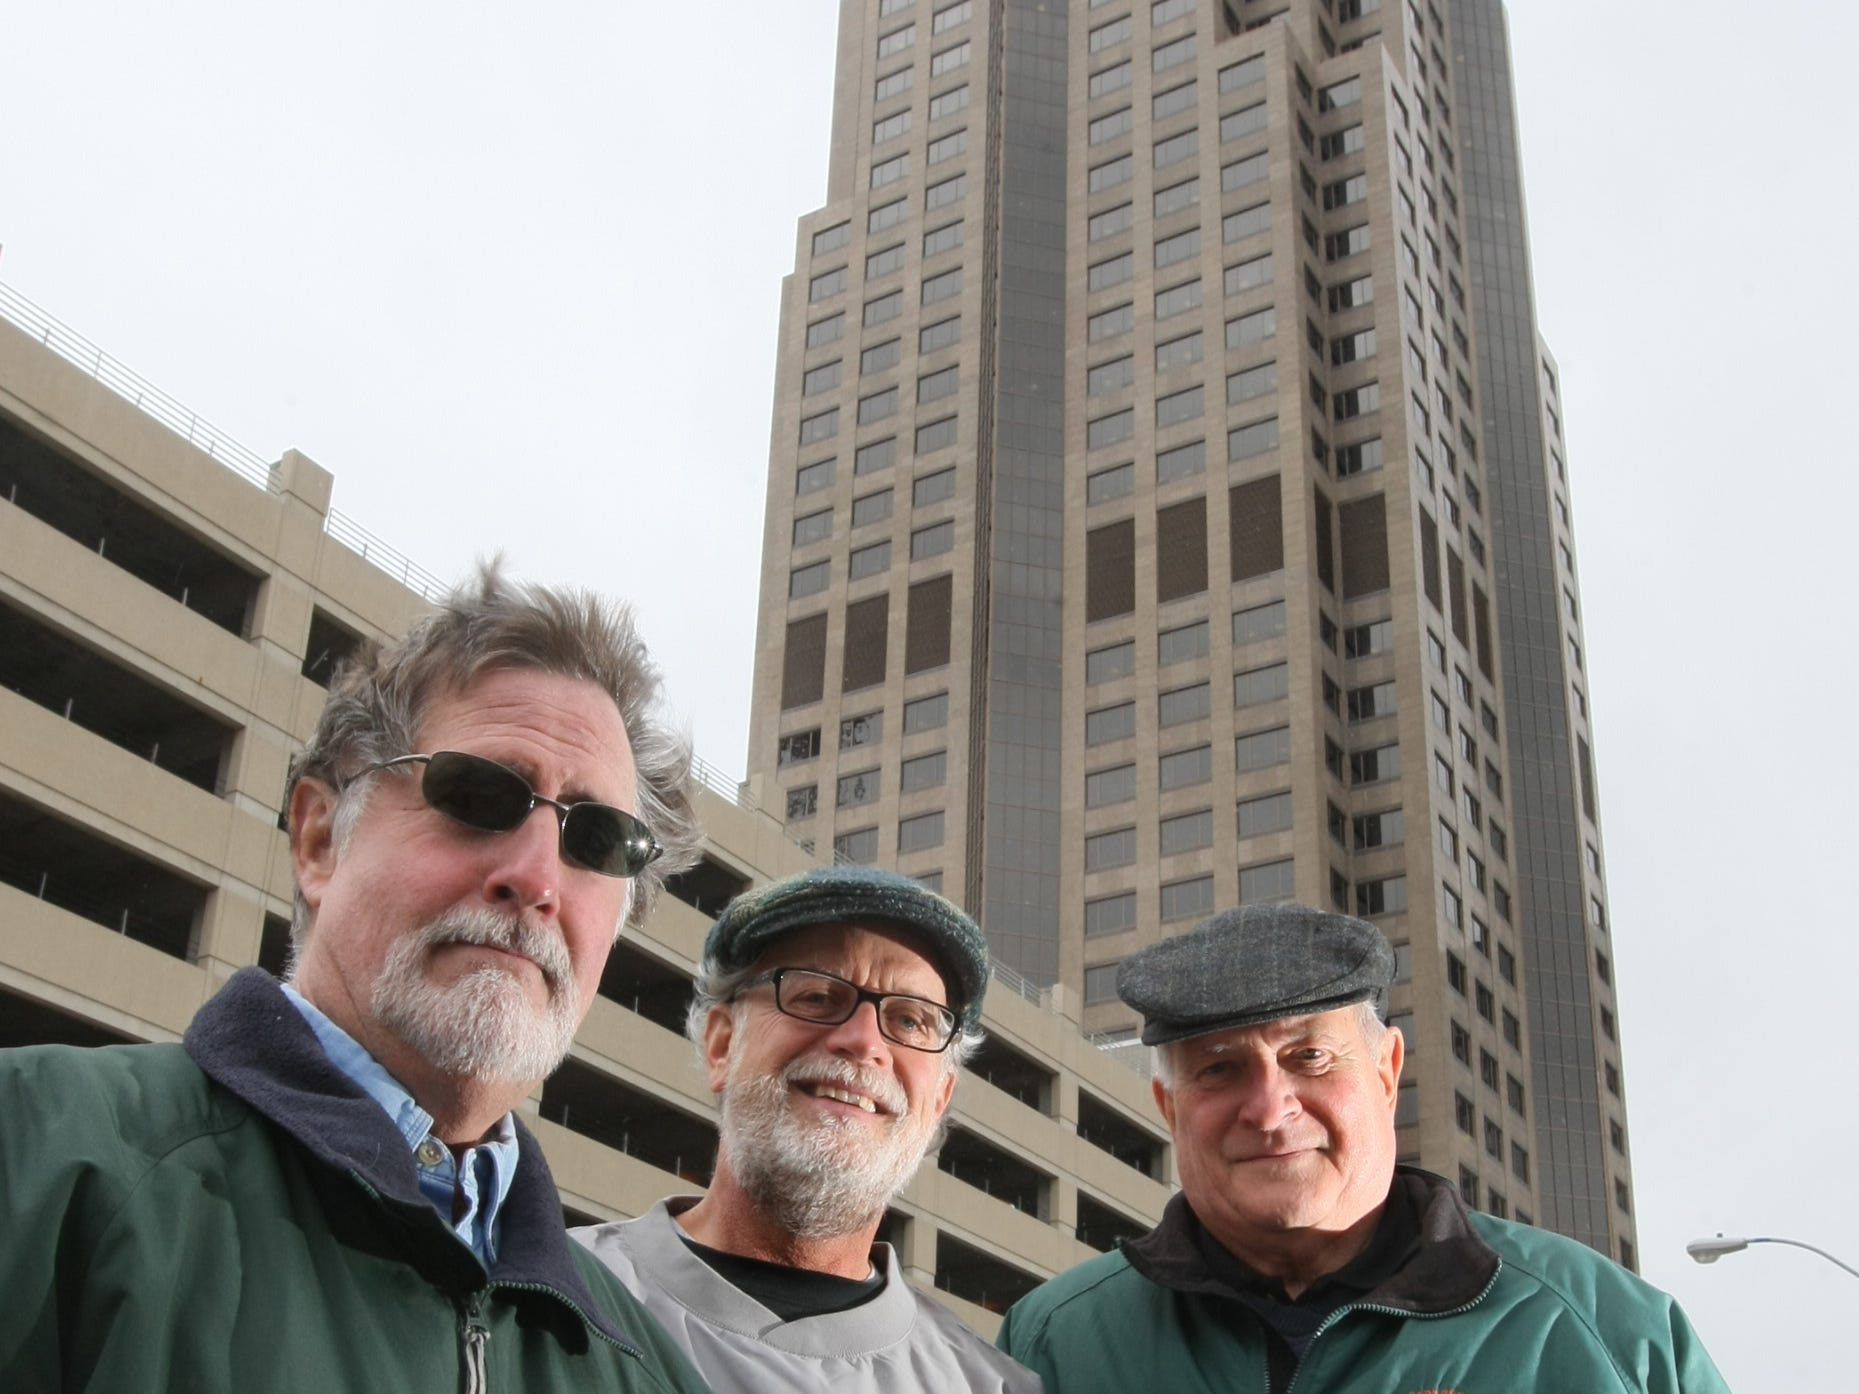 Ed Kelly, left, Jerry Grady and Bill McCarthy were organizers for the 2013 St. Patrick's Day parade, which will travel along Grand Avenue this year. (Mary Chind/The Register)